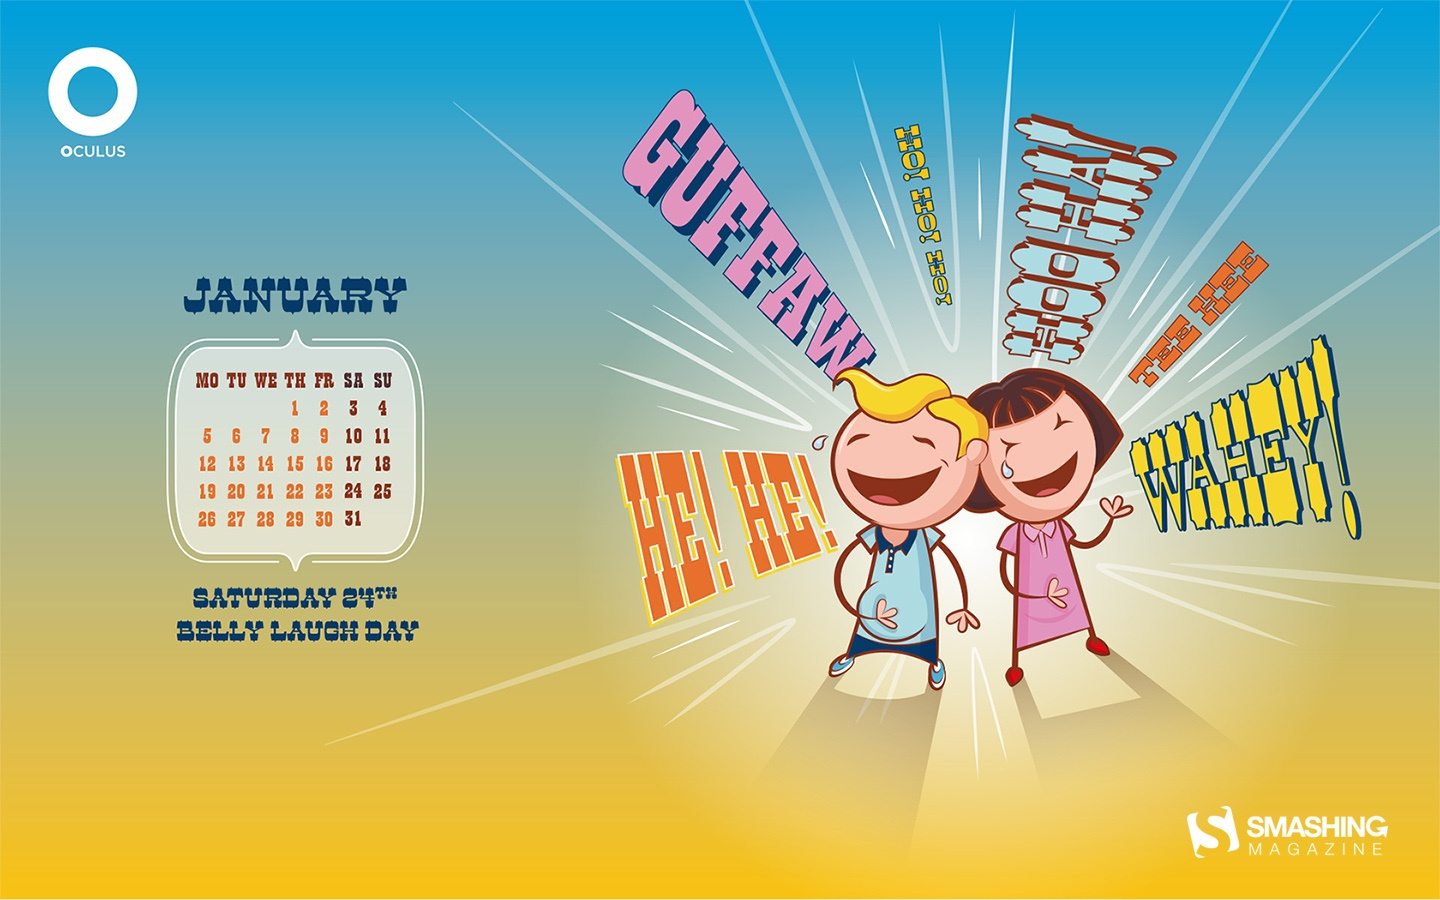 In January Calendar Wallpaper 51307